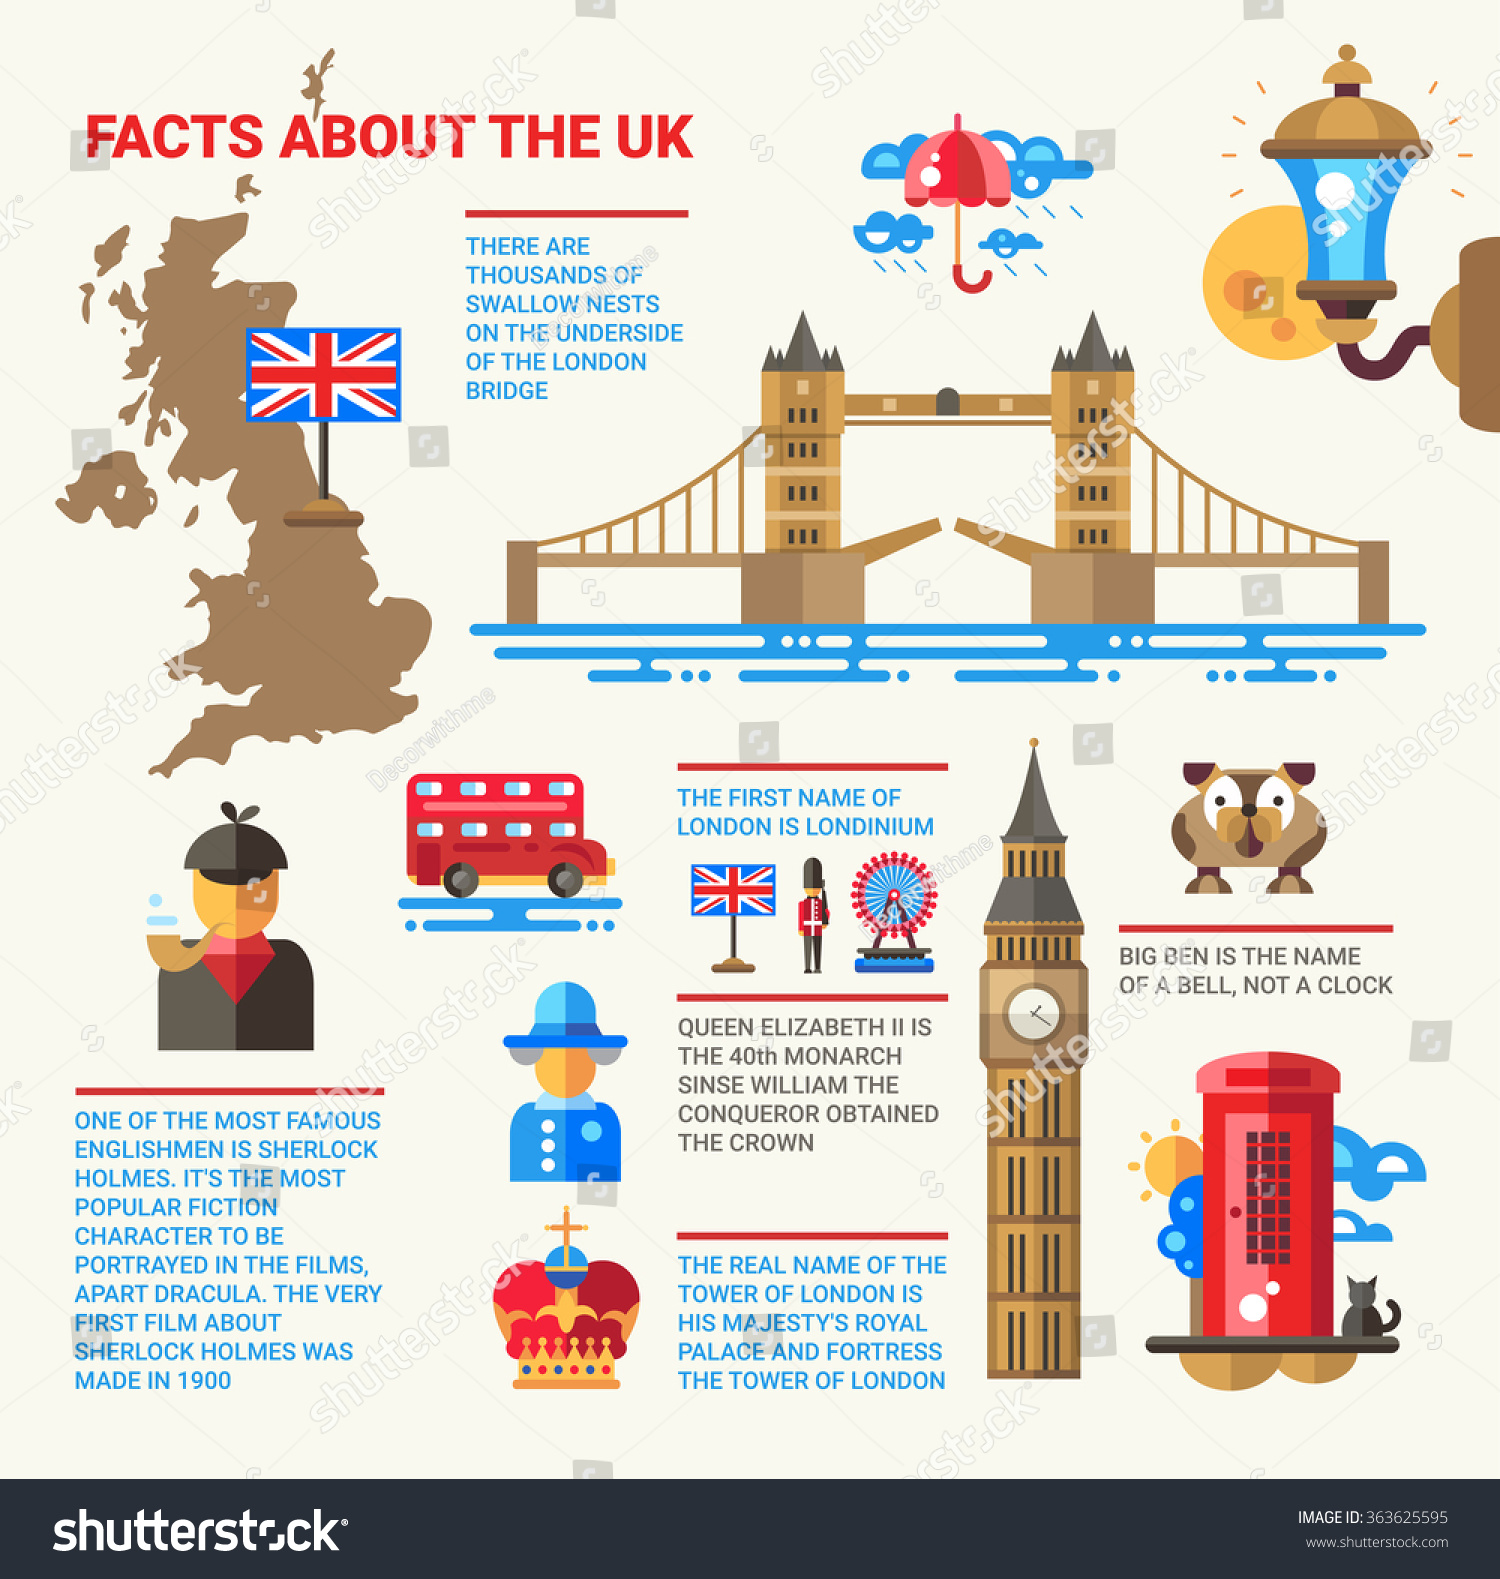 Poster design 1900 - Illustration Of Information Poster With Flat Design United Kingdom Icons And Infographics Elements Facts About